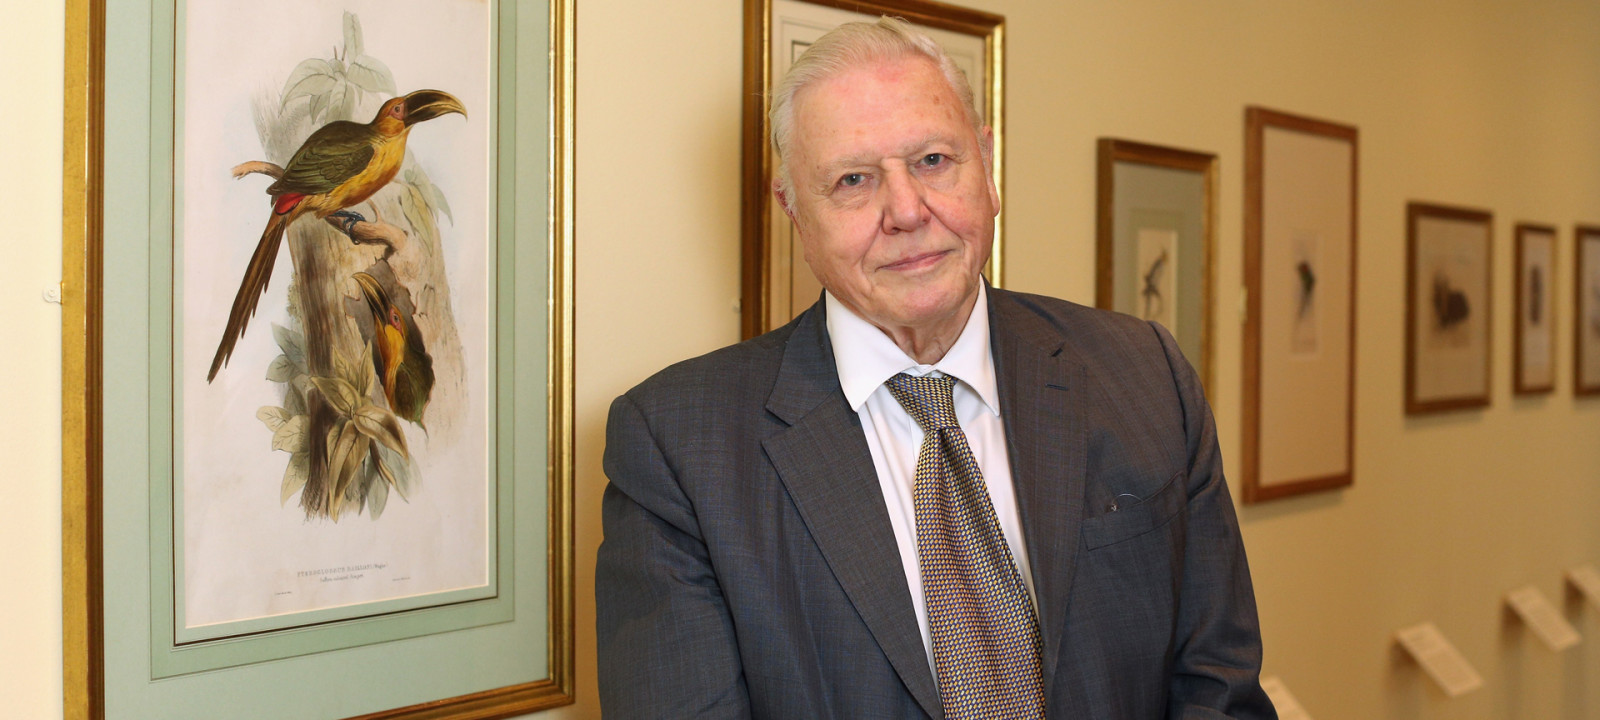 David Attenborough (Photo: Oli Scarff / Getty Images)